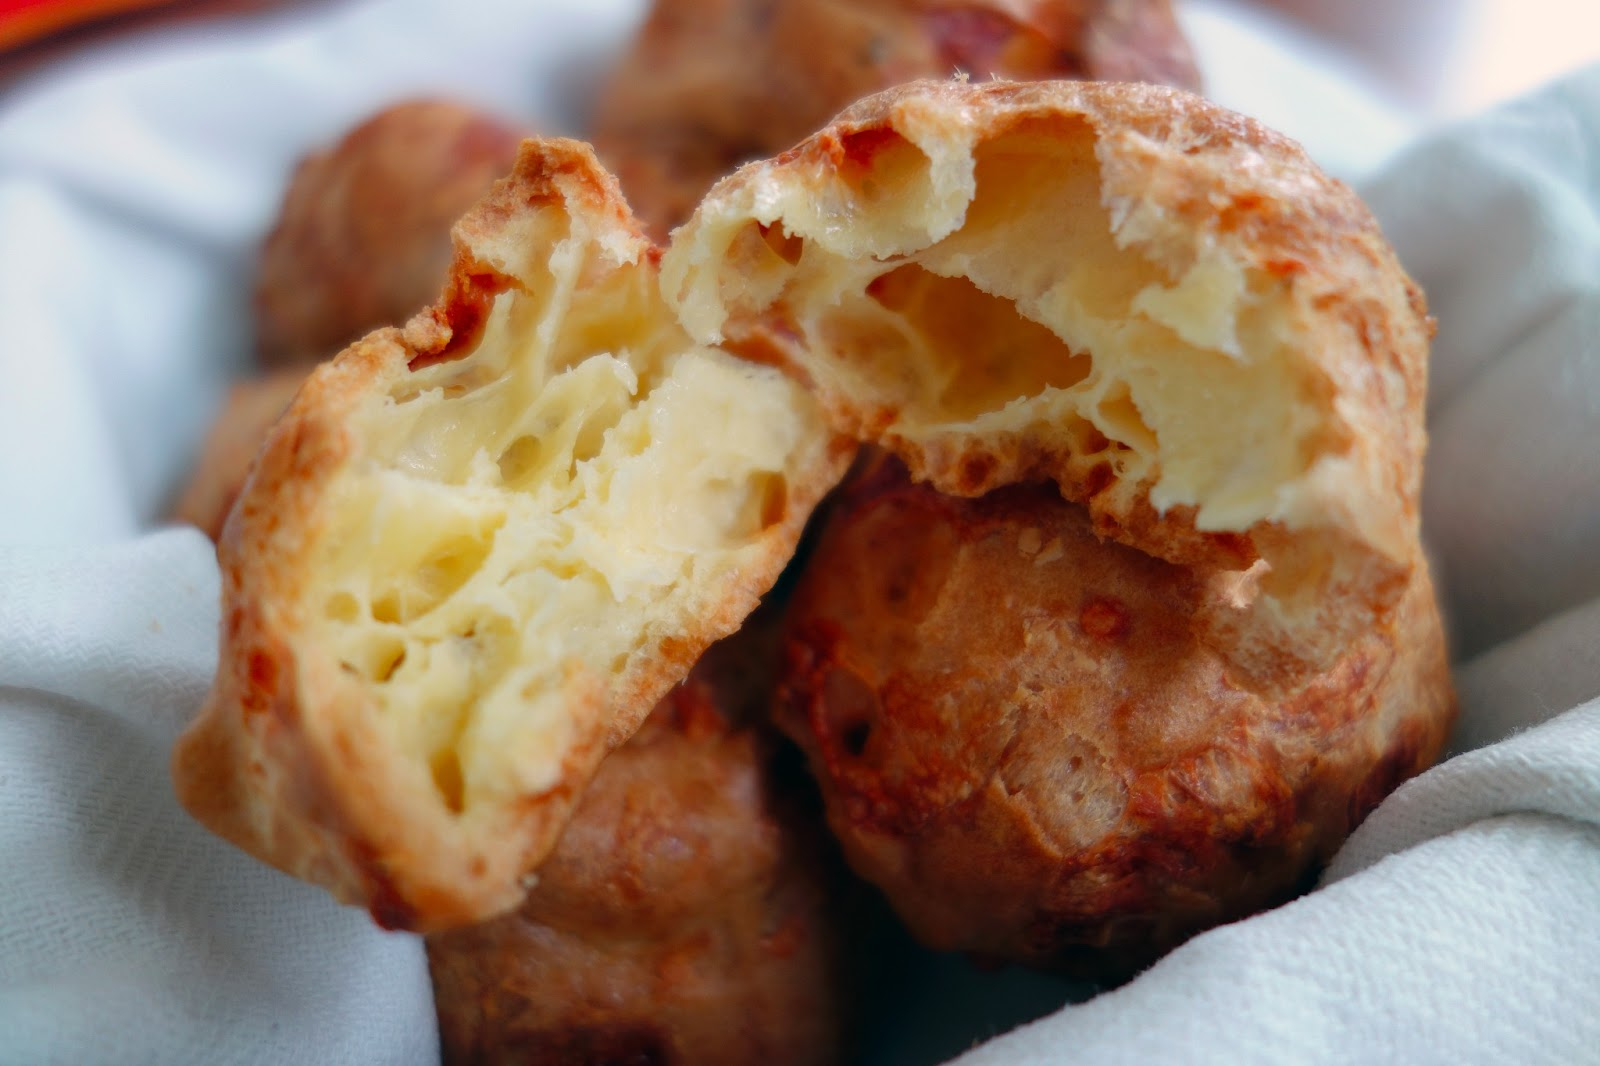 Gougères | French Cheese Puffs | FORGET THOSE CALORIES